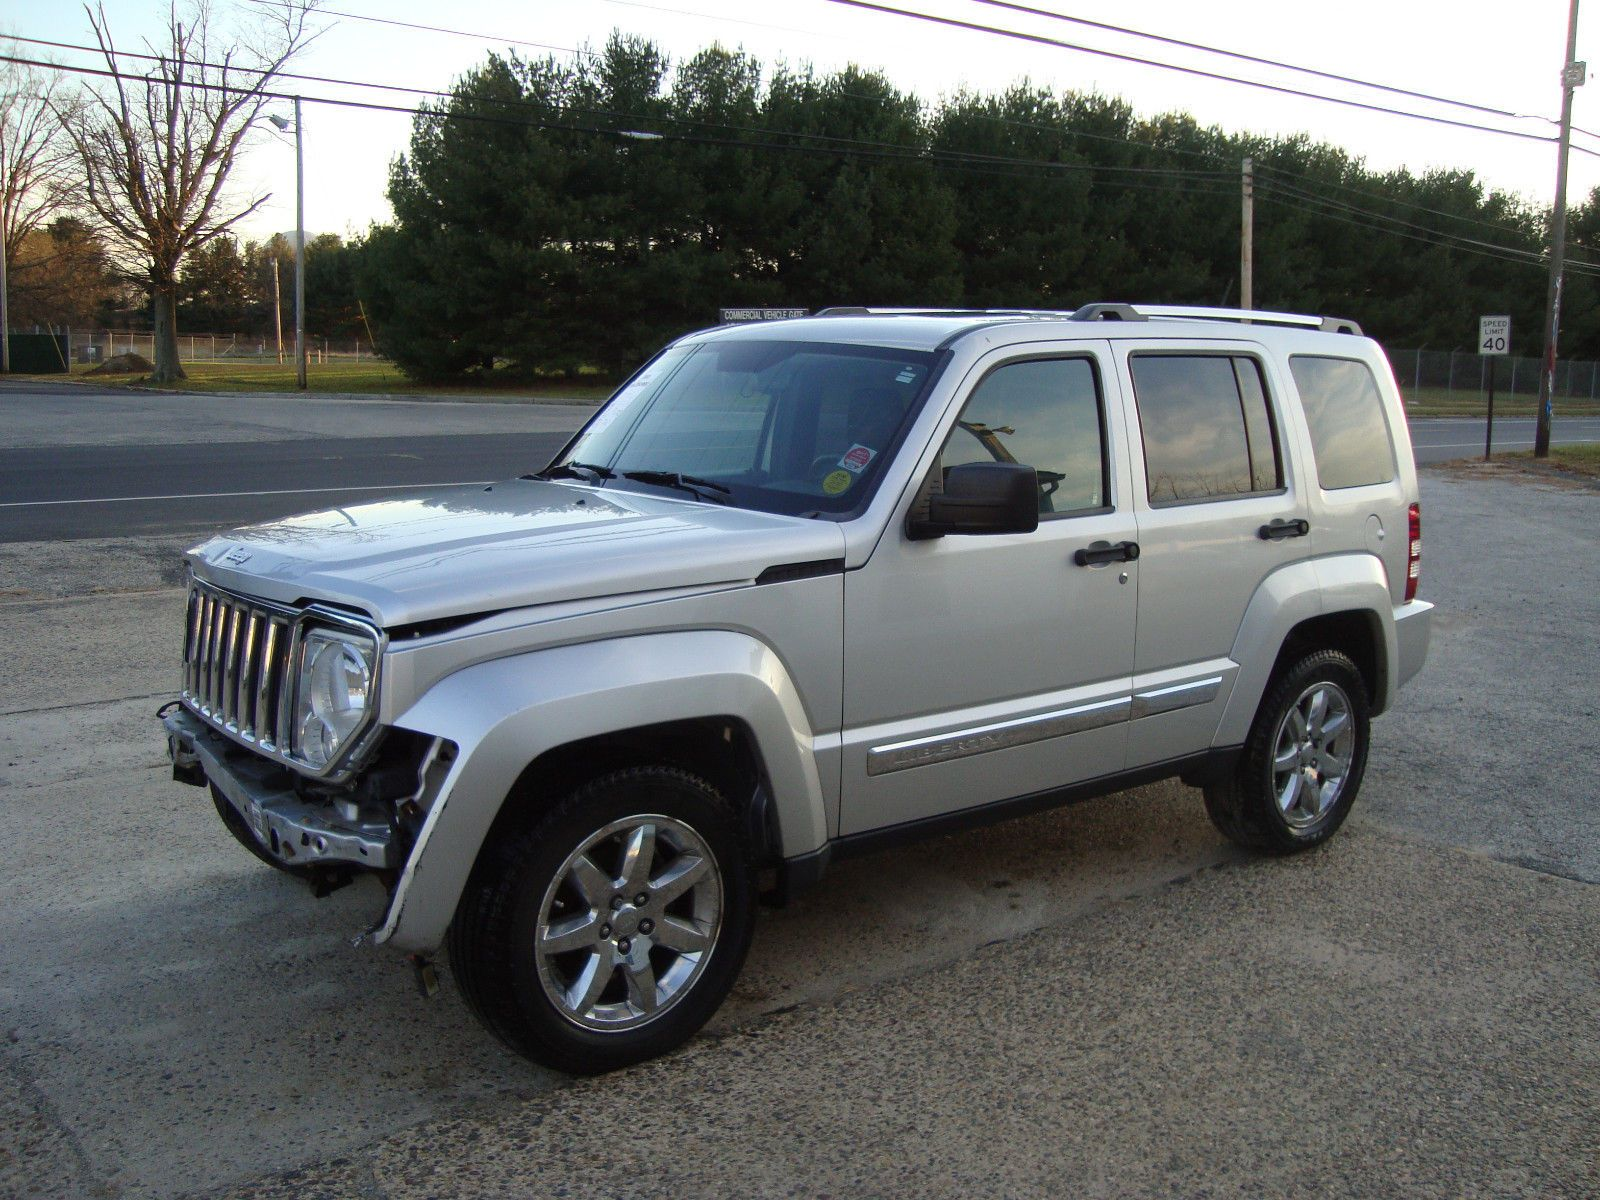 2009 Jeep Liberty Limited AWD Salvage Rebuildable Repairable